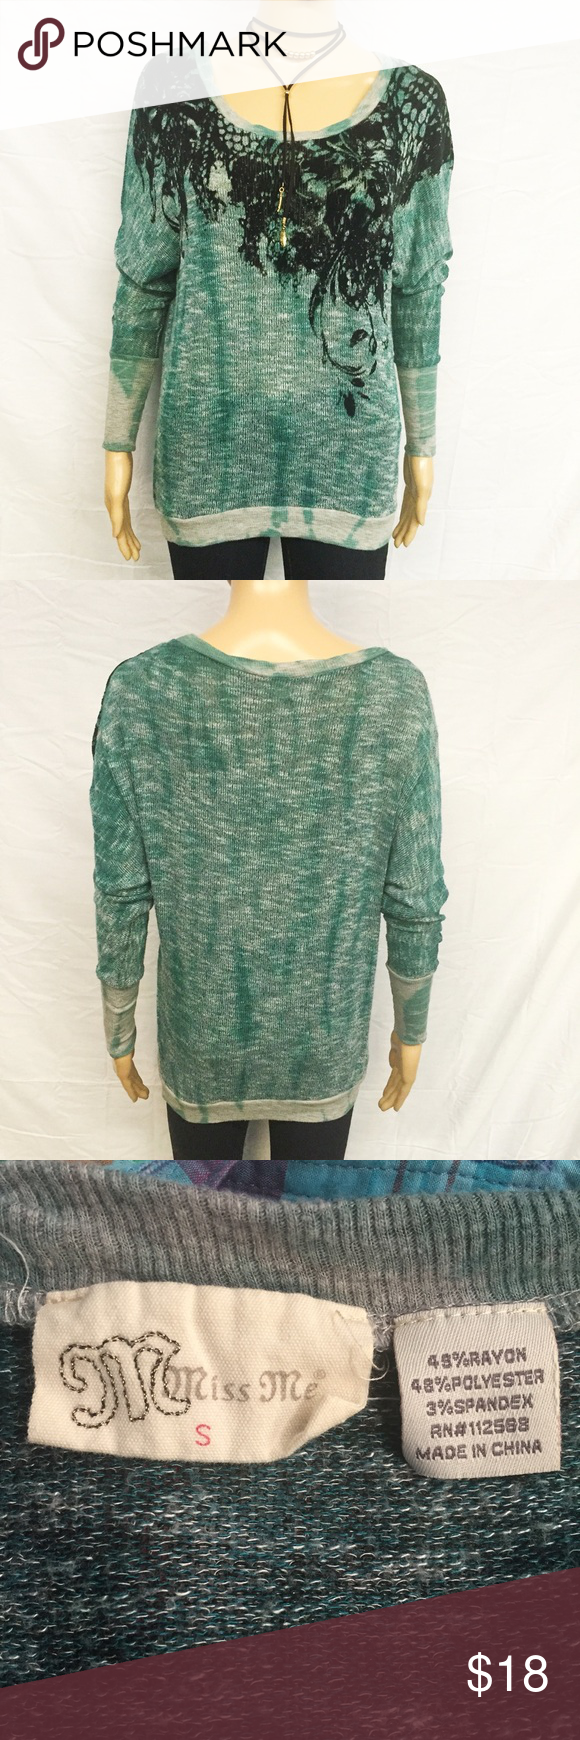 Miss Me Tunic Sweater Super cute Miss Me tunic length sweater! Beautiful embroidered lace pattern accented by black beads. Dolman sleeves. Large stretchy cuffed sleeves. Runs slightly large for a relaxed fit. Gently used with no damage. Smoke and pet free home. Miss Me Sweaters Crew & Scoop Necks